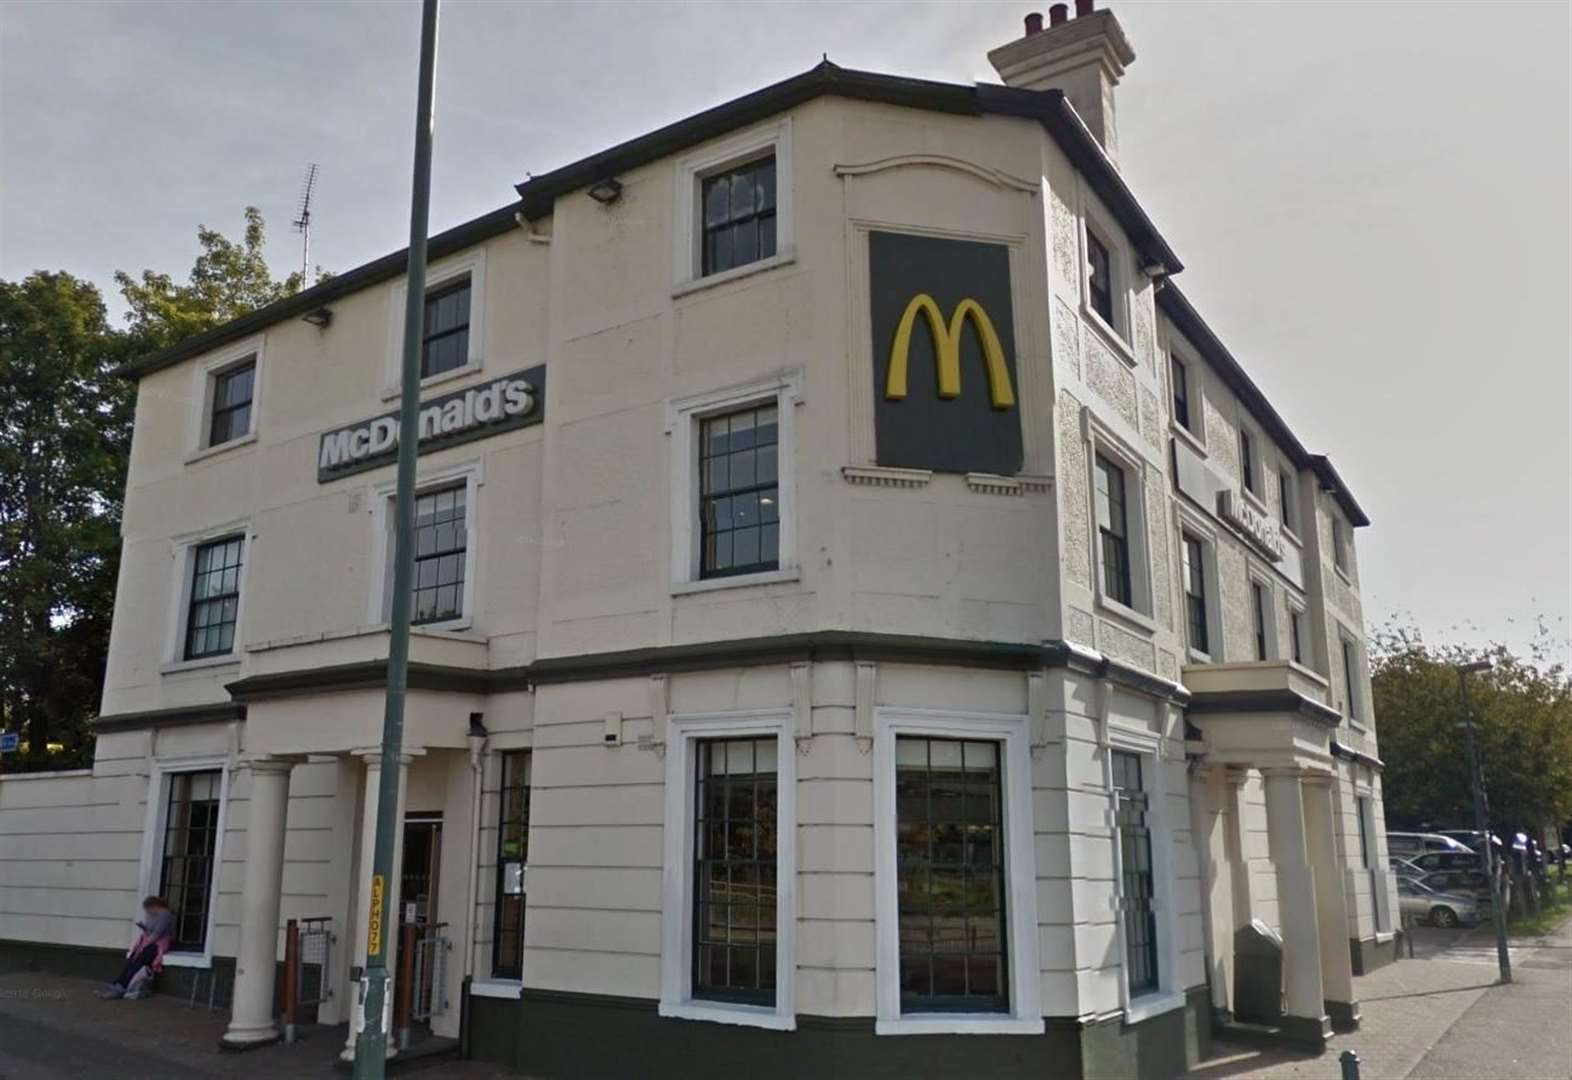 Consultation on McDonald's drive-thru plans